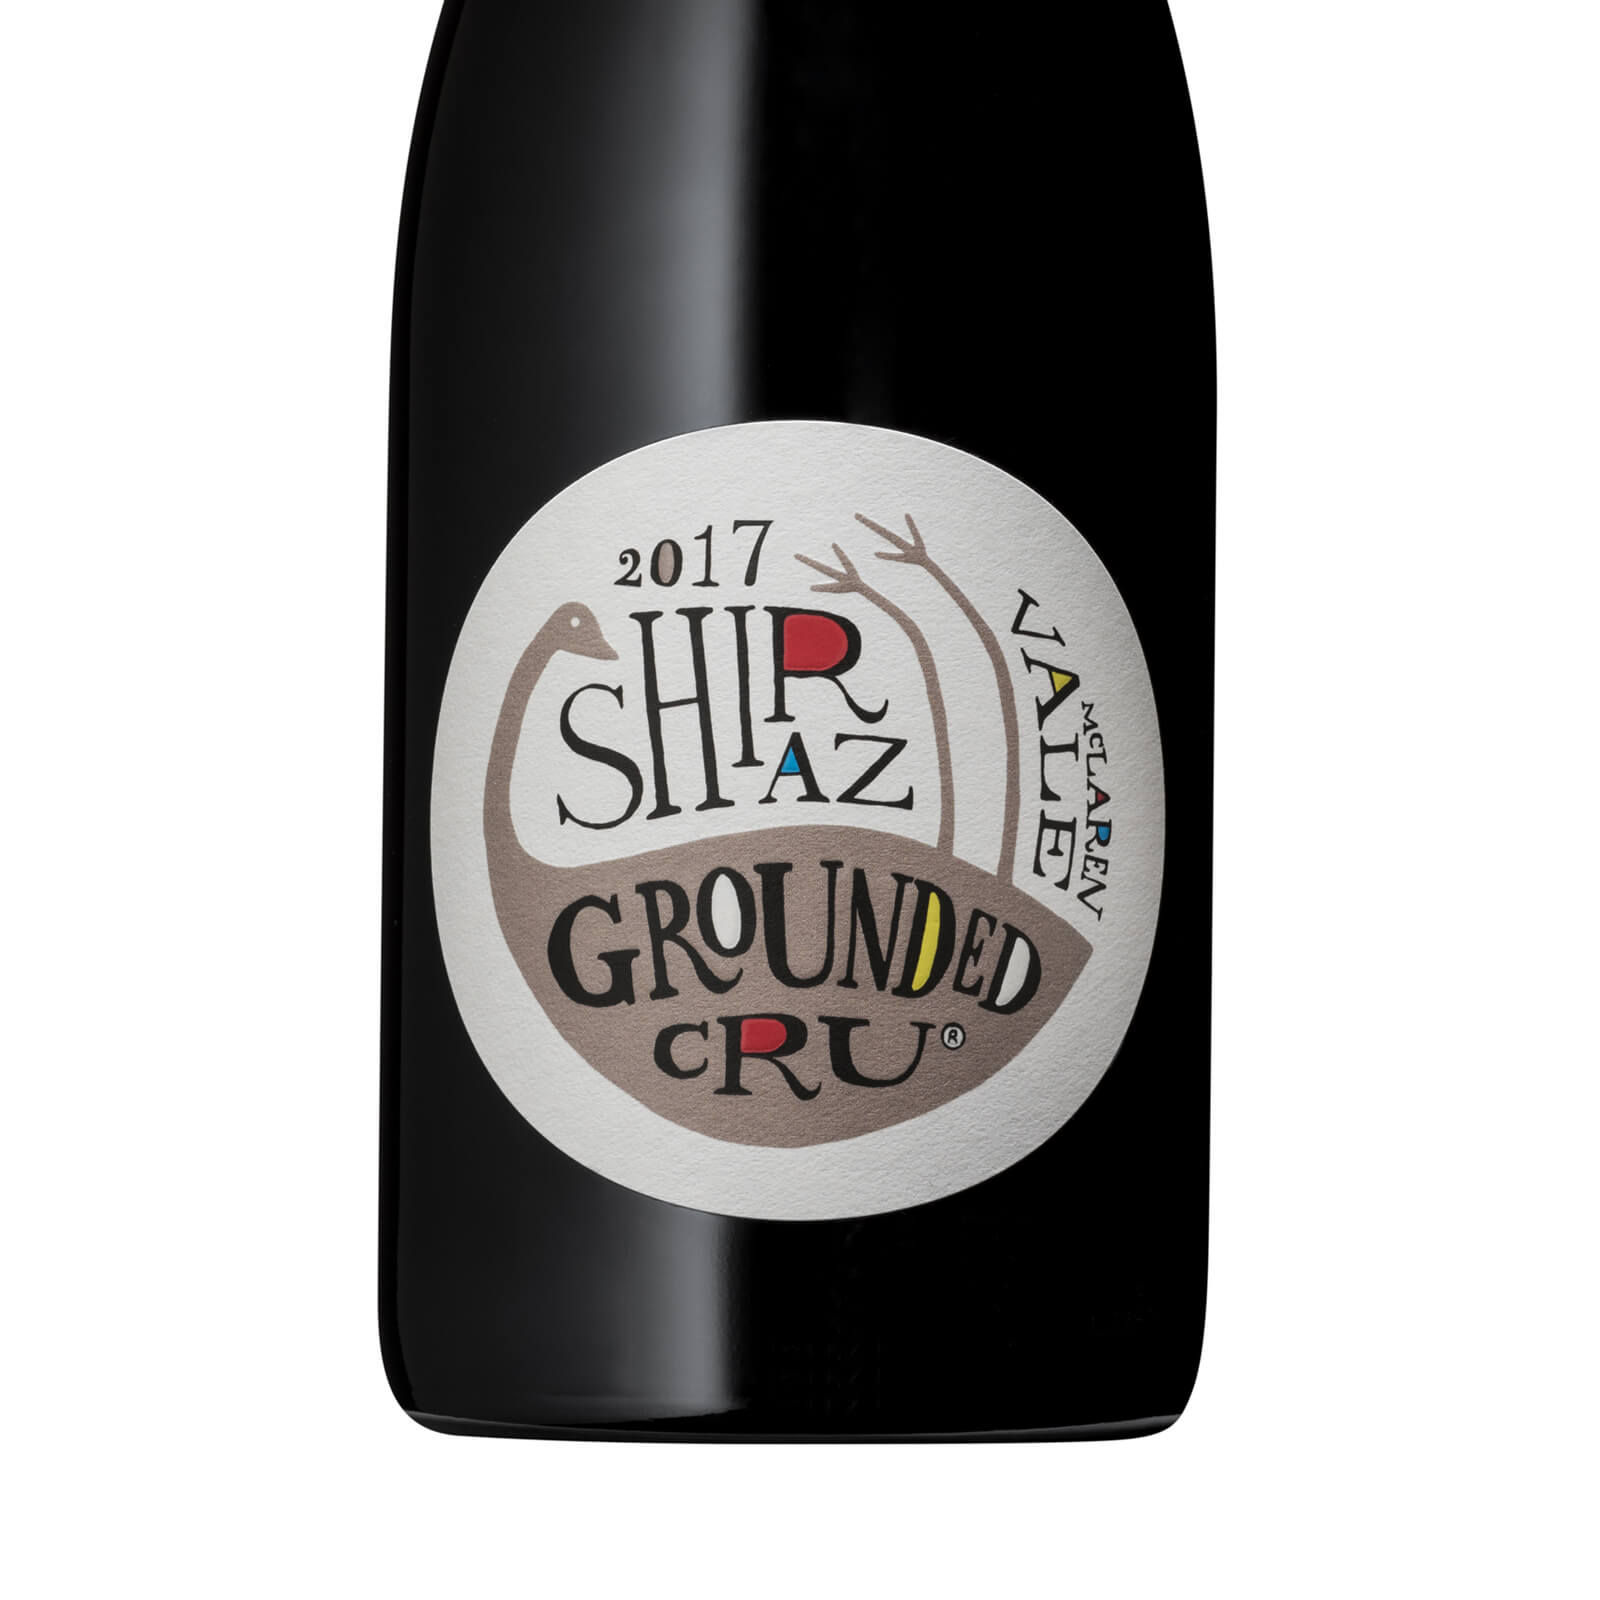 products-grounded-cru-mclaren-vale-shiraz-b